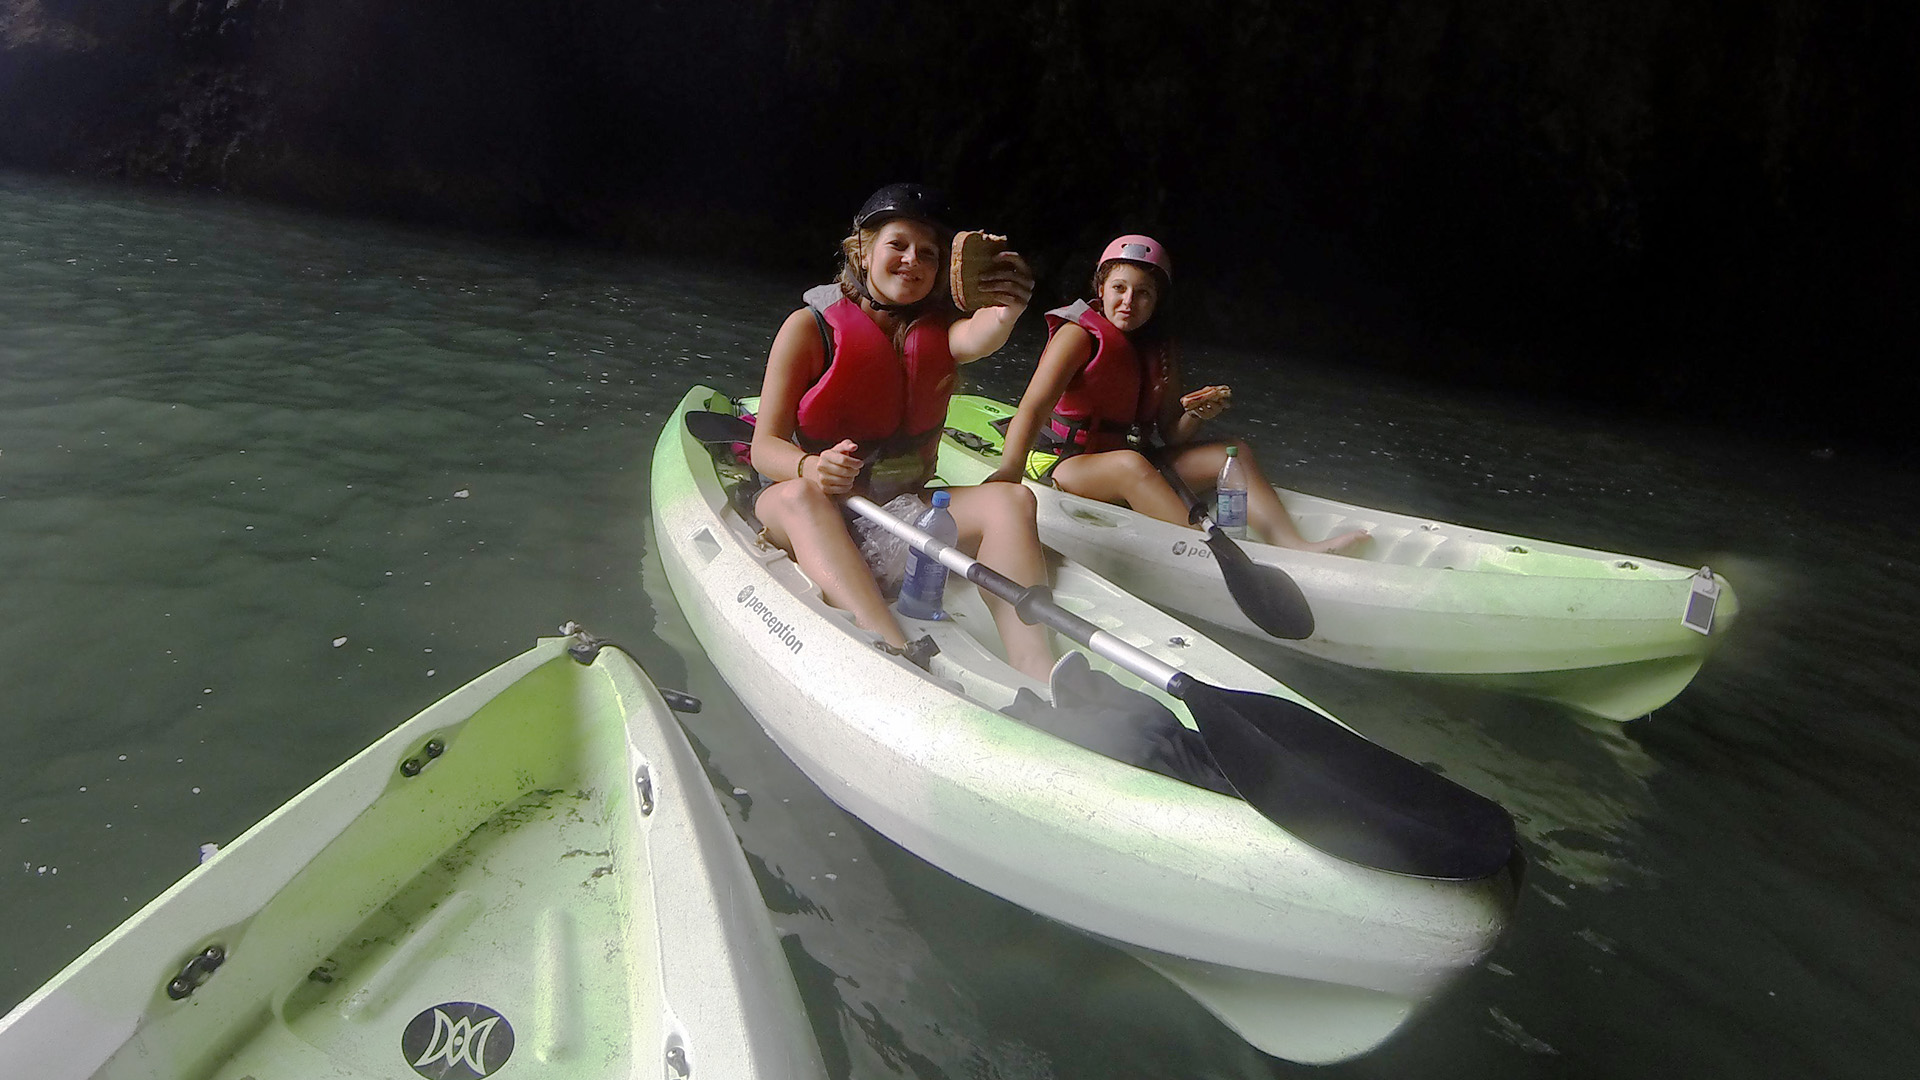 Stefanie and Zeinab eating sandwiches on kayaks inside a sea cave